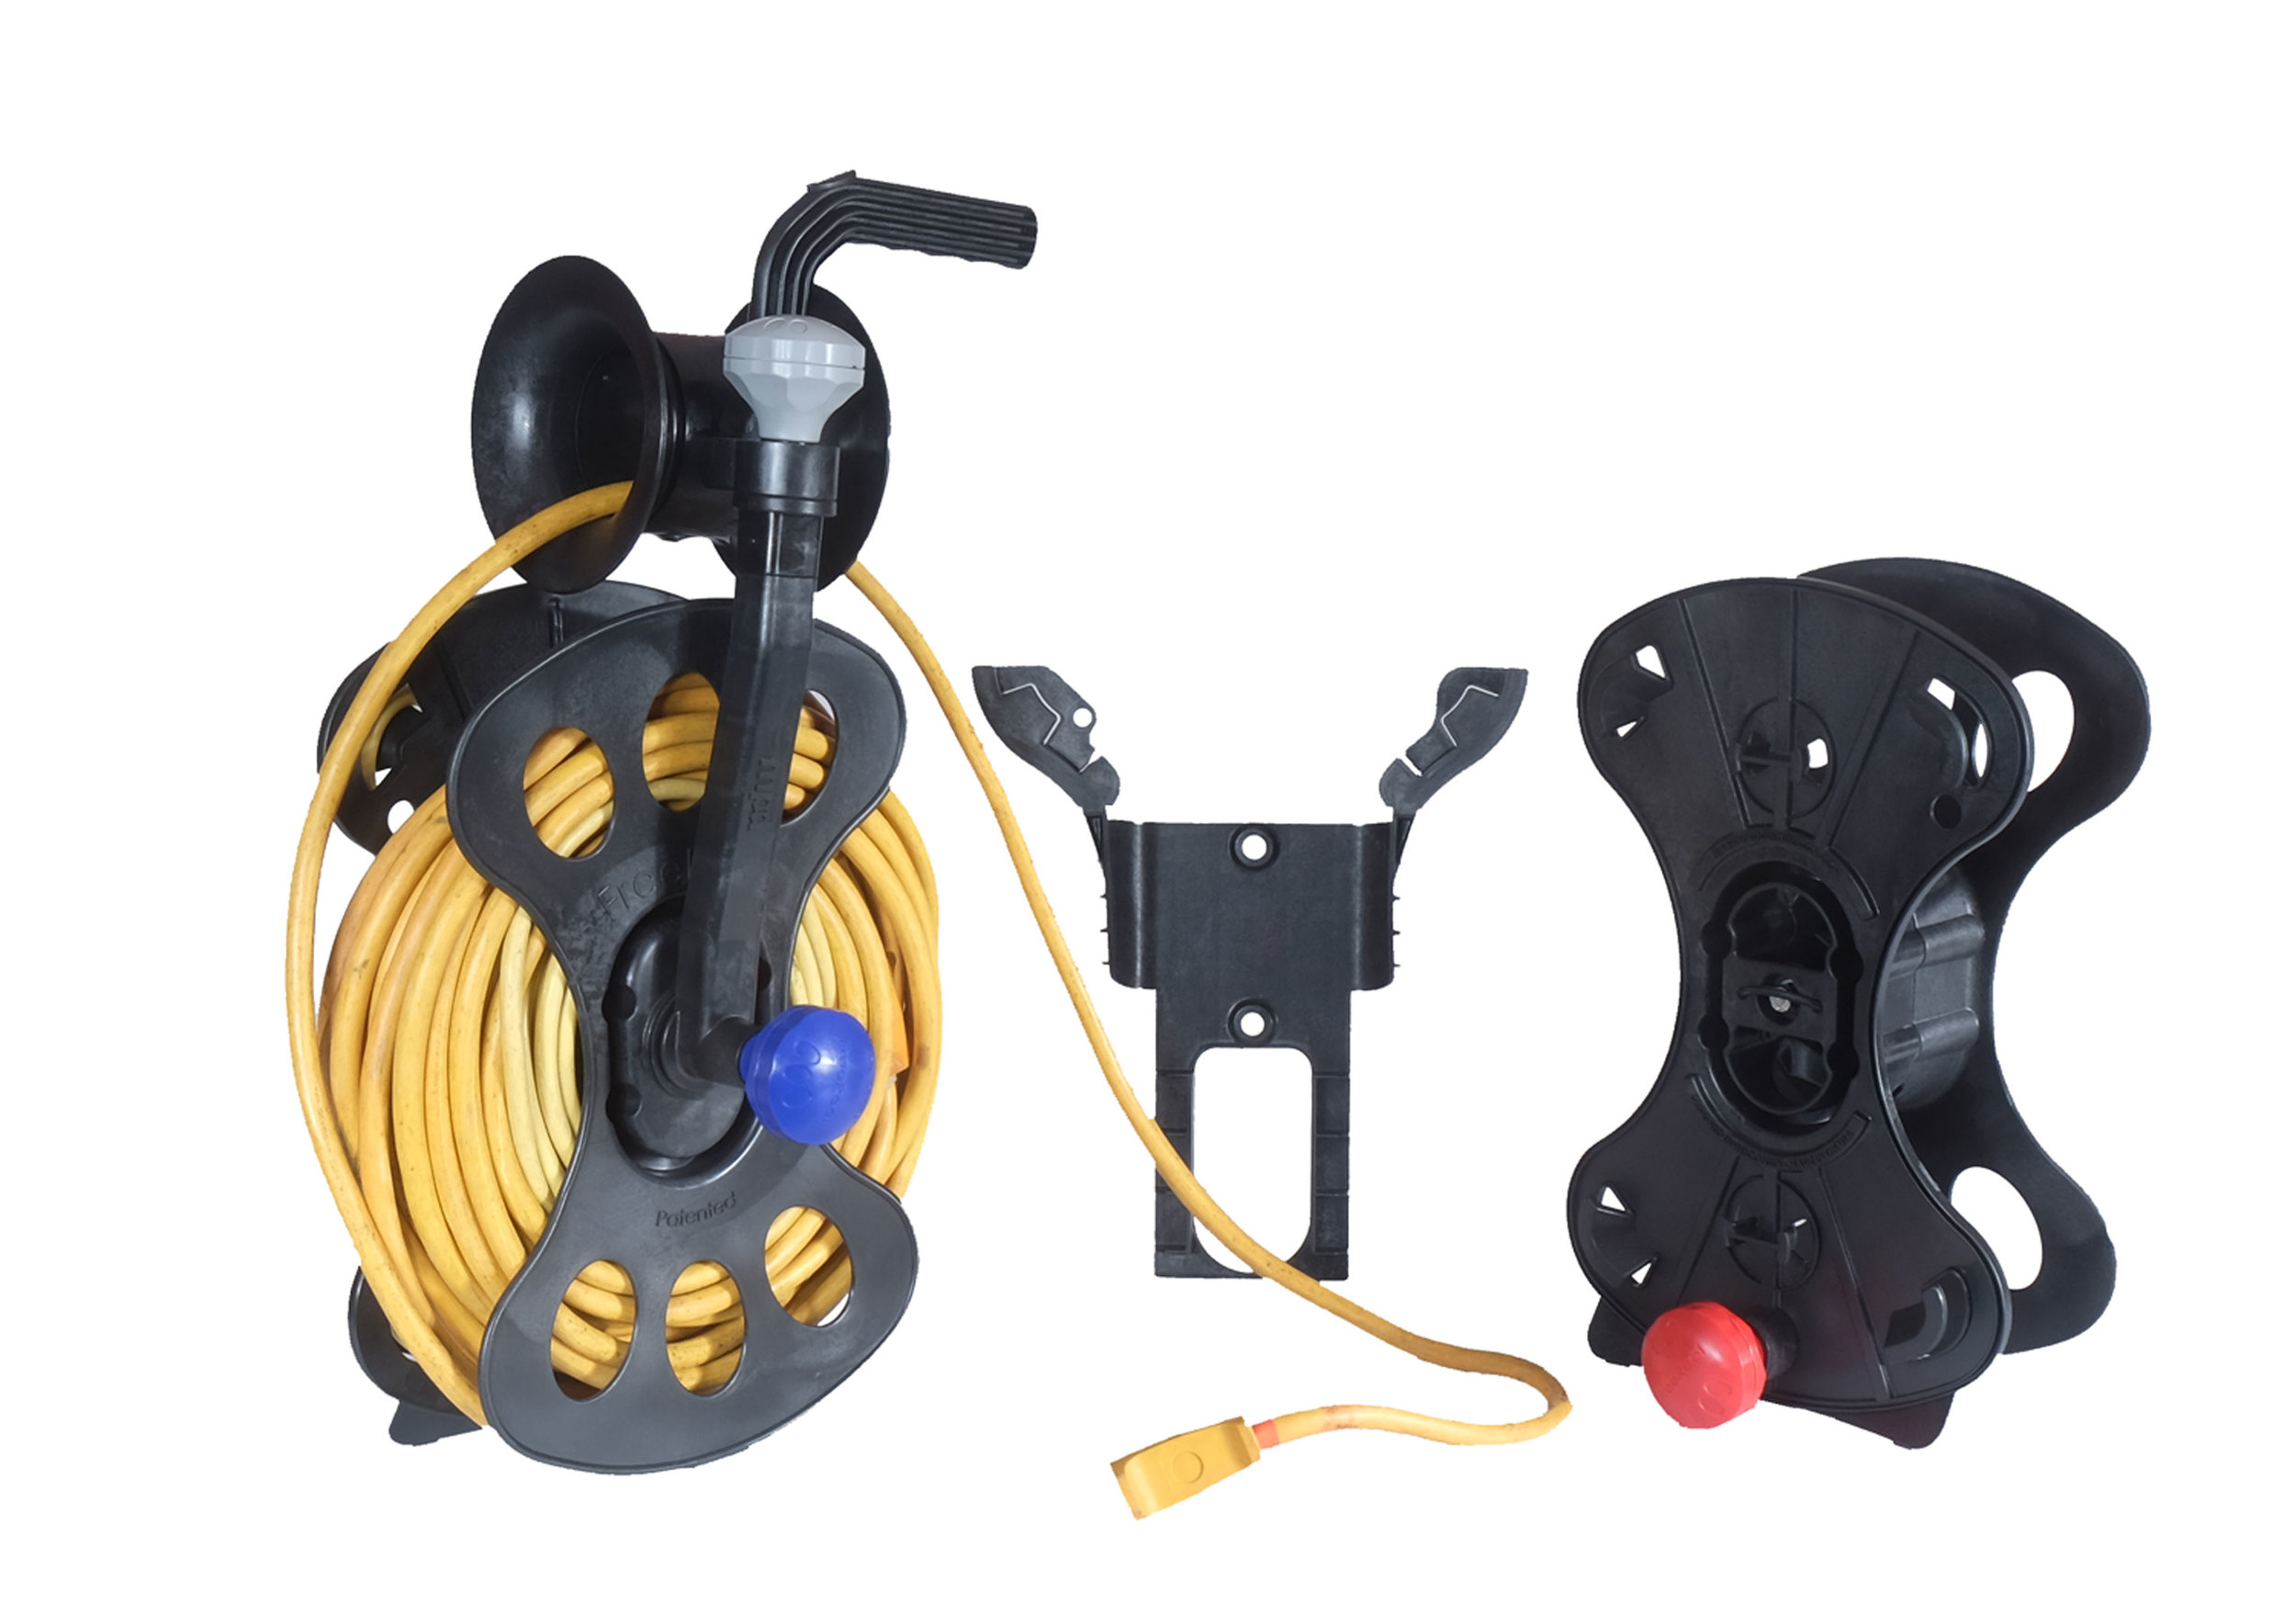 freereel with power cord